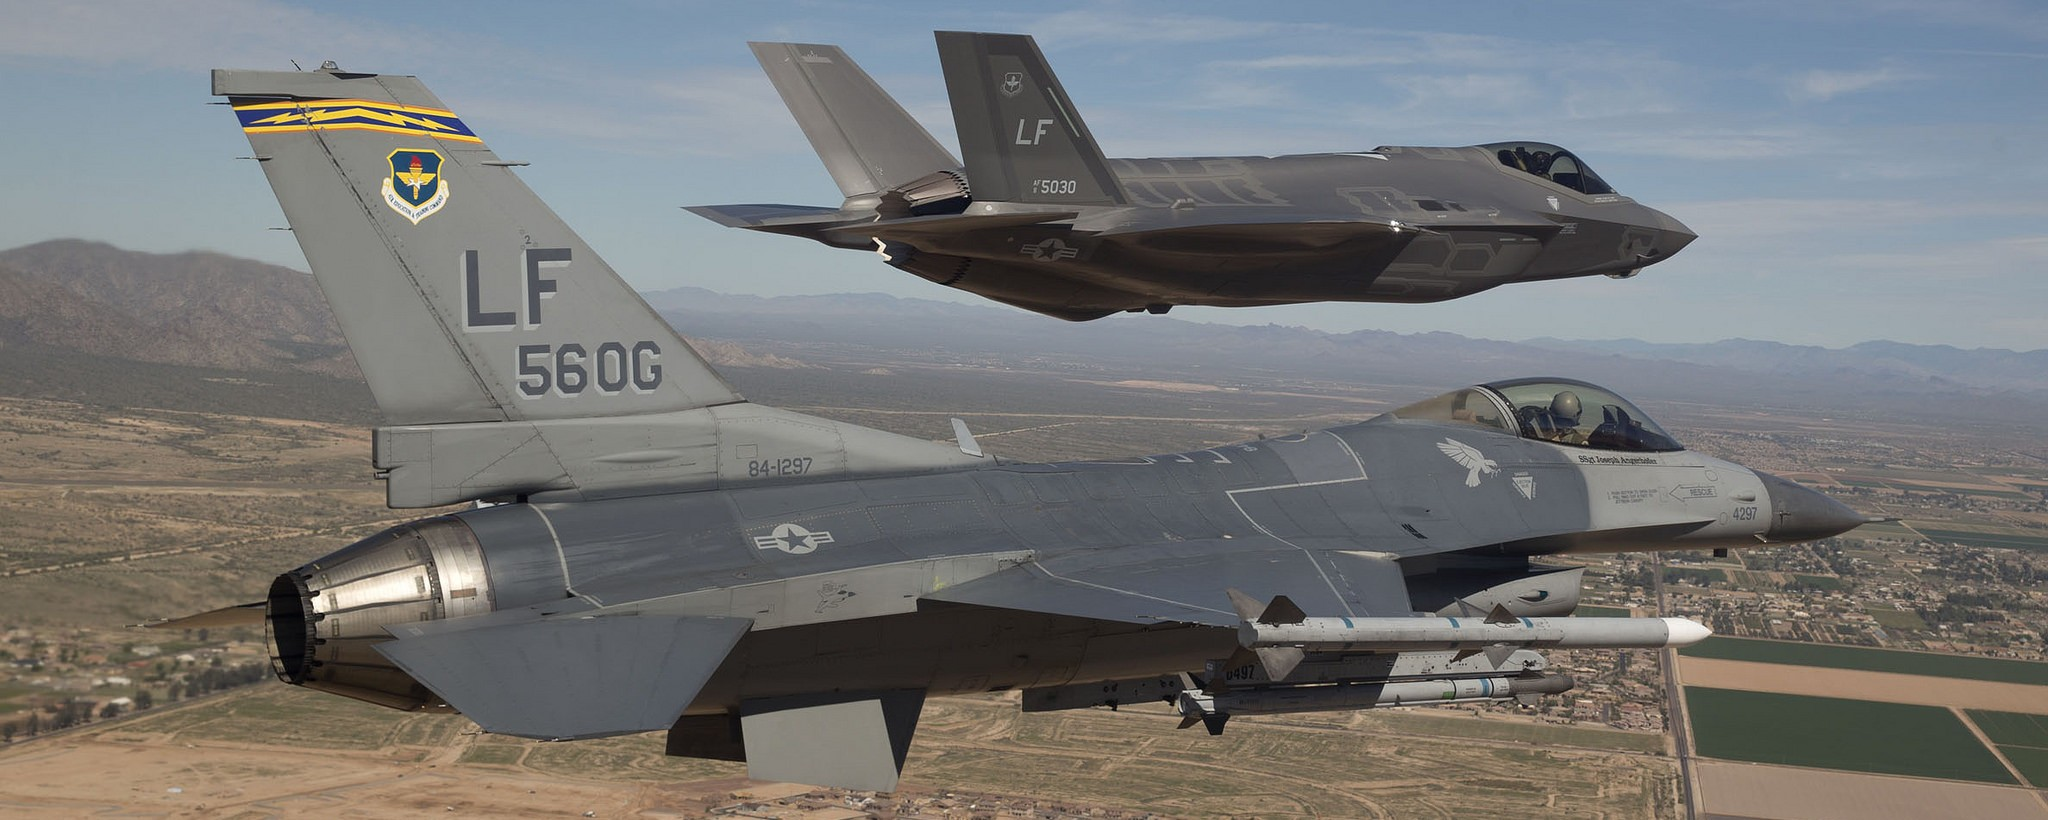 The Incredibly Expensive F-35 May Look Cool, But Does it Actually Work?